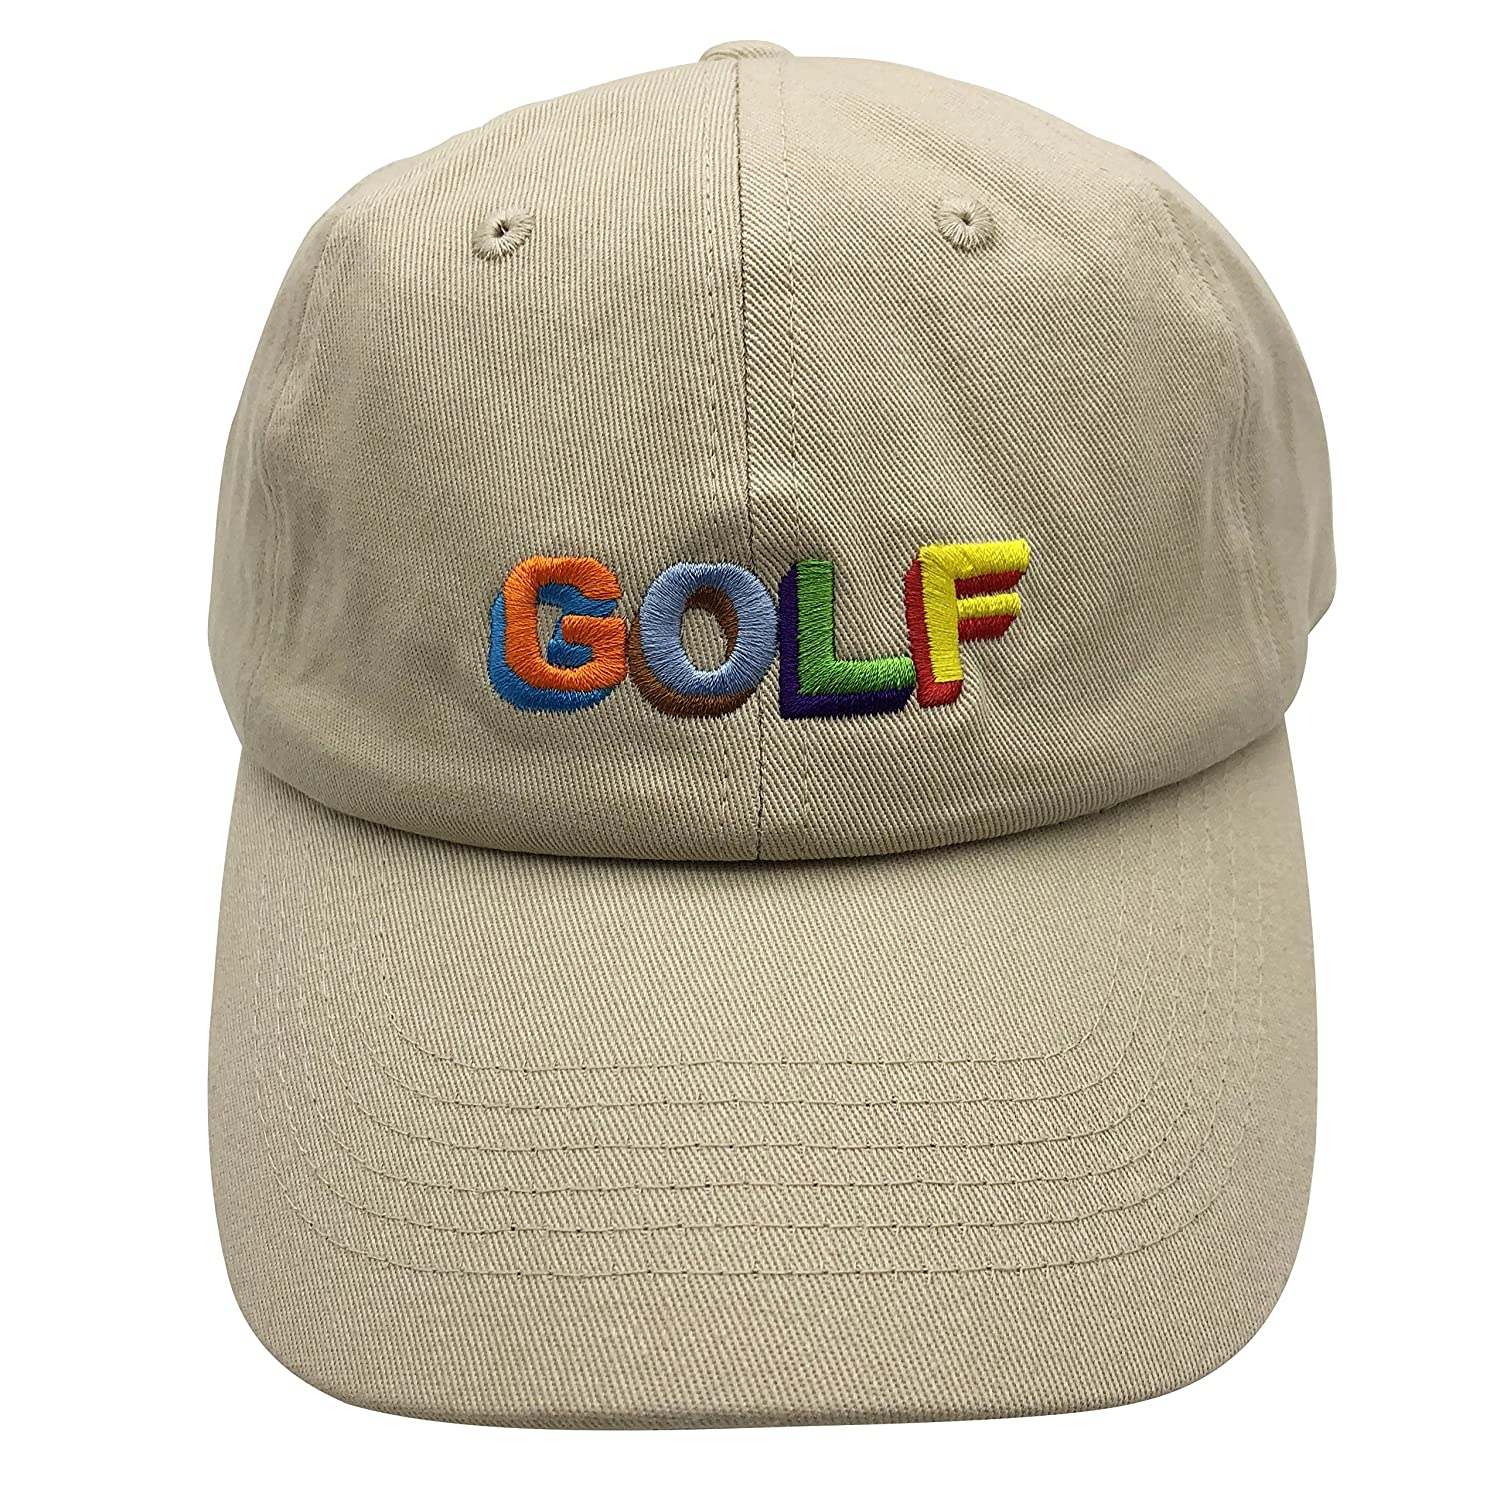 60e6f3d7f944 wuxianyong Golf Dad Hat Baseball Cap 3D Embroidered Adjustable Snapback  Unisex Beige at Amazon Men s Clothing store